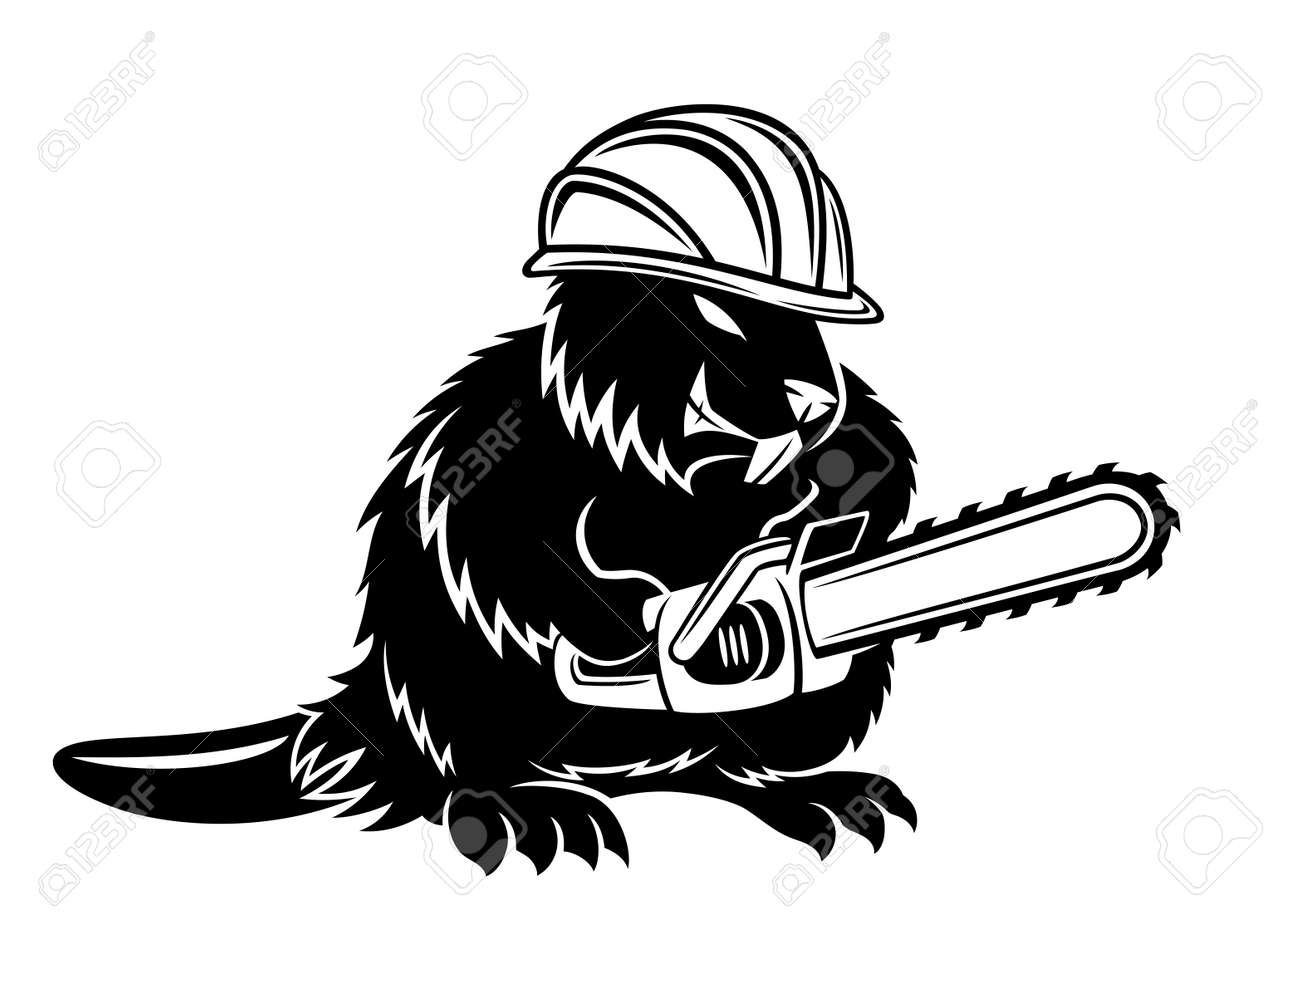 Beaver icon with chainsaw on white background. - 168969133